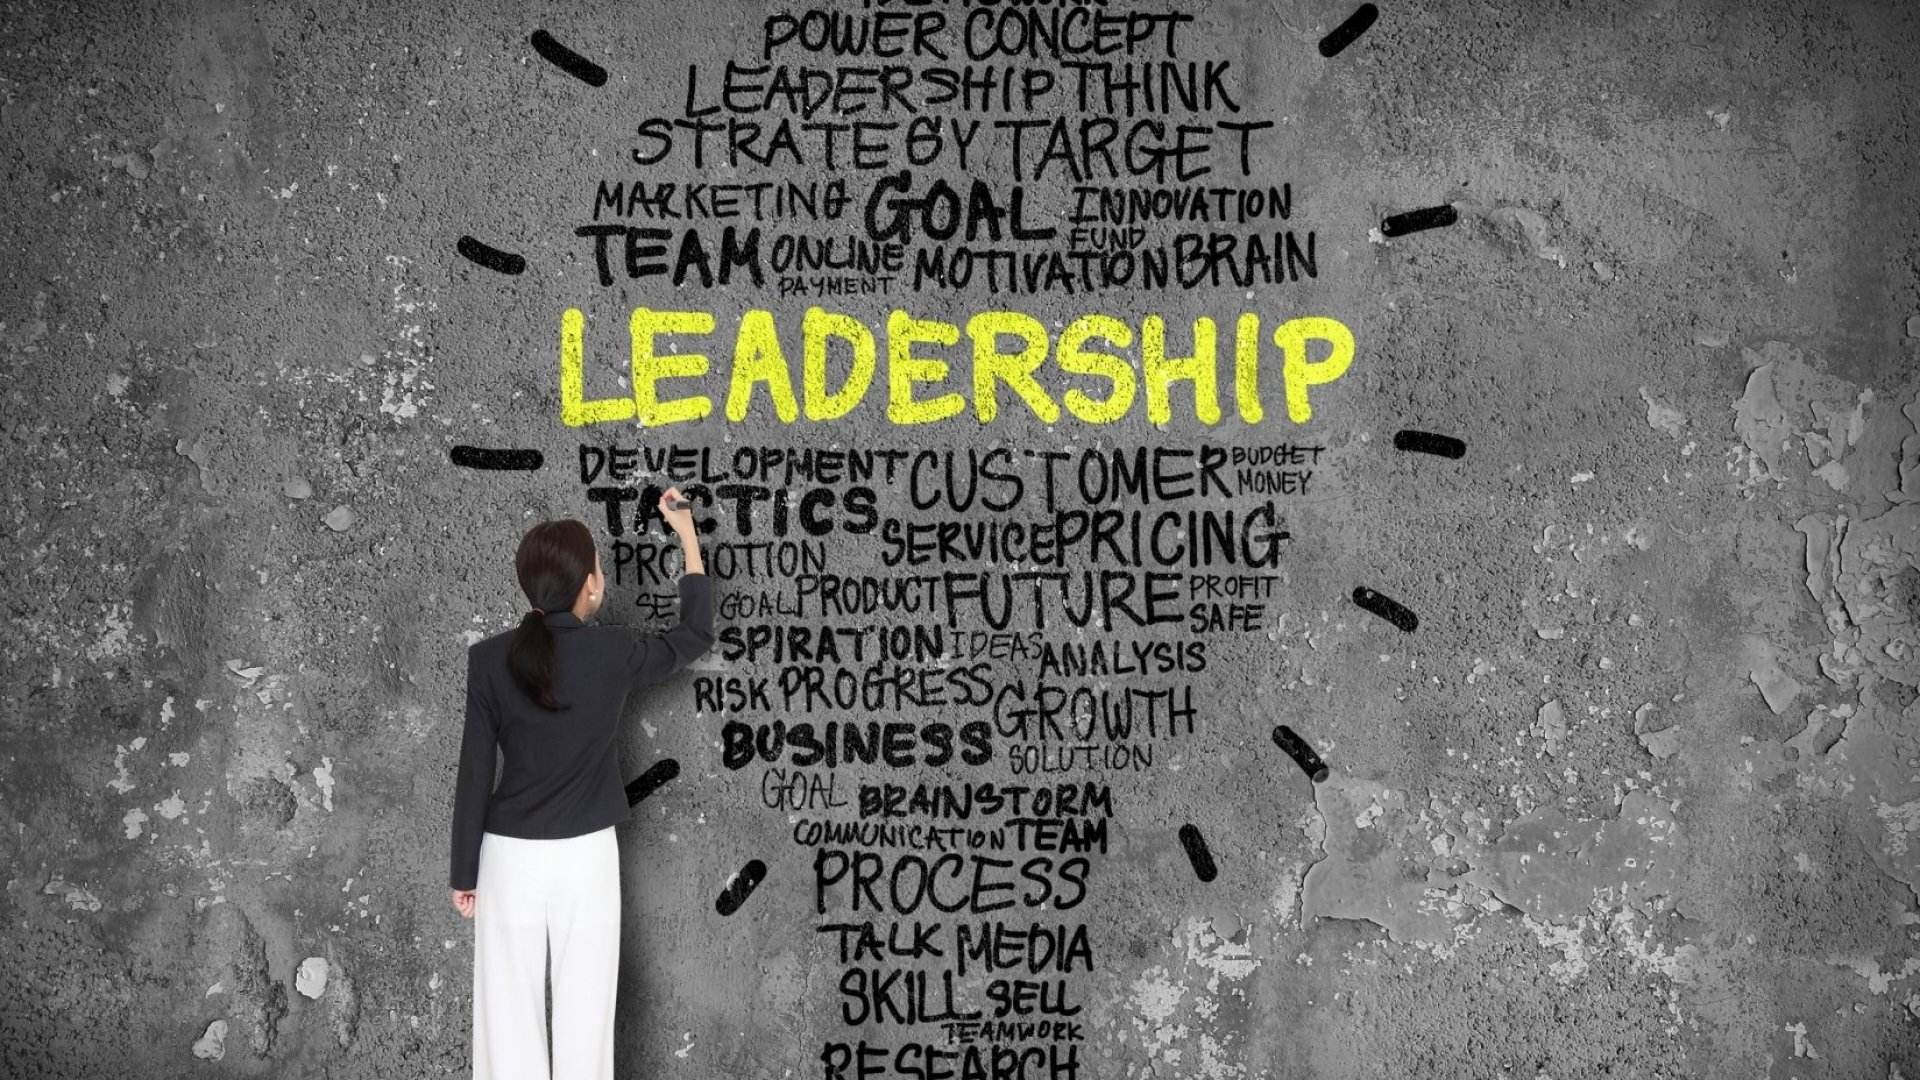 5 Unmistakable Signs That You Are an Inspired Leader